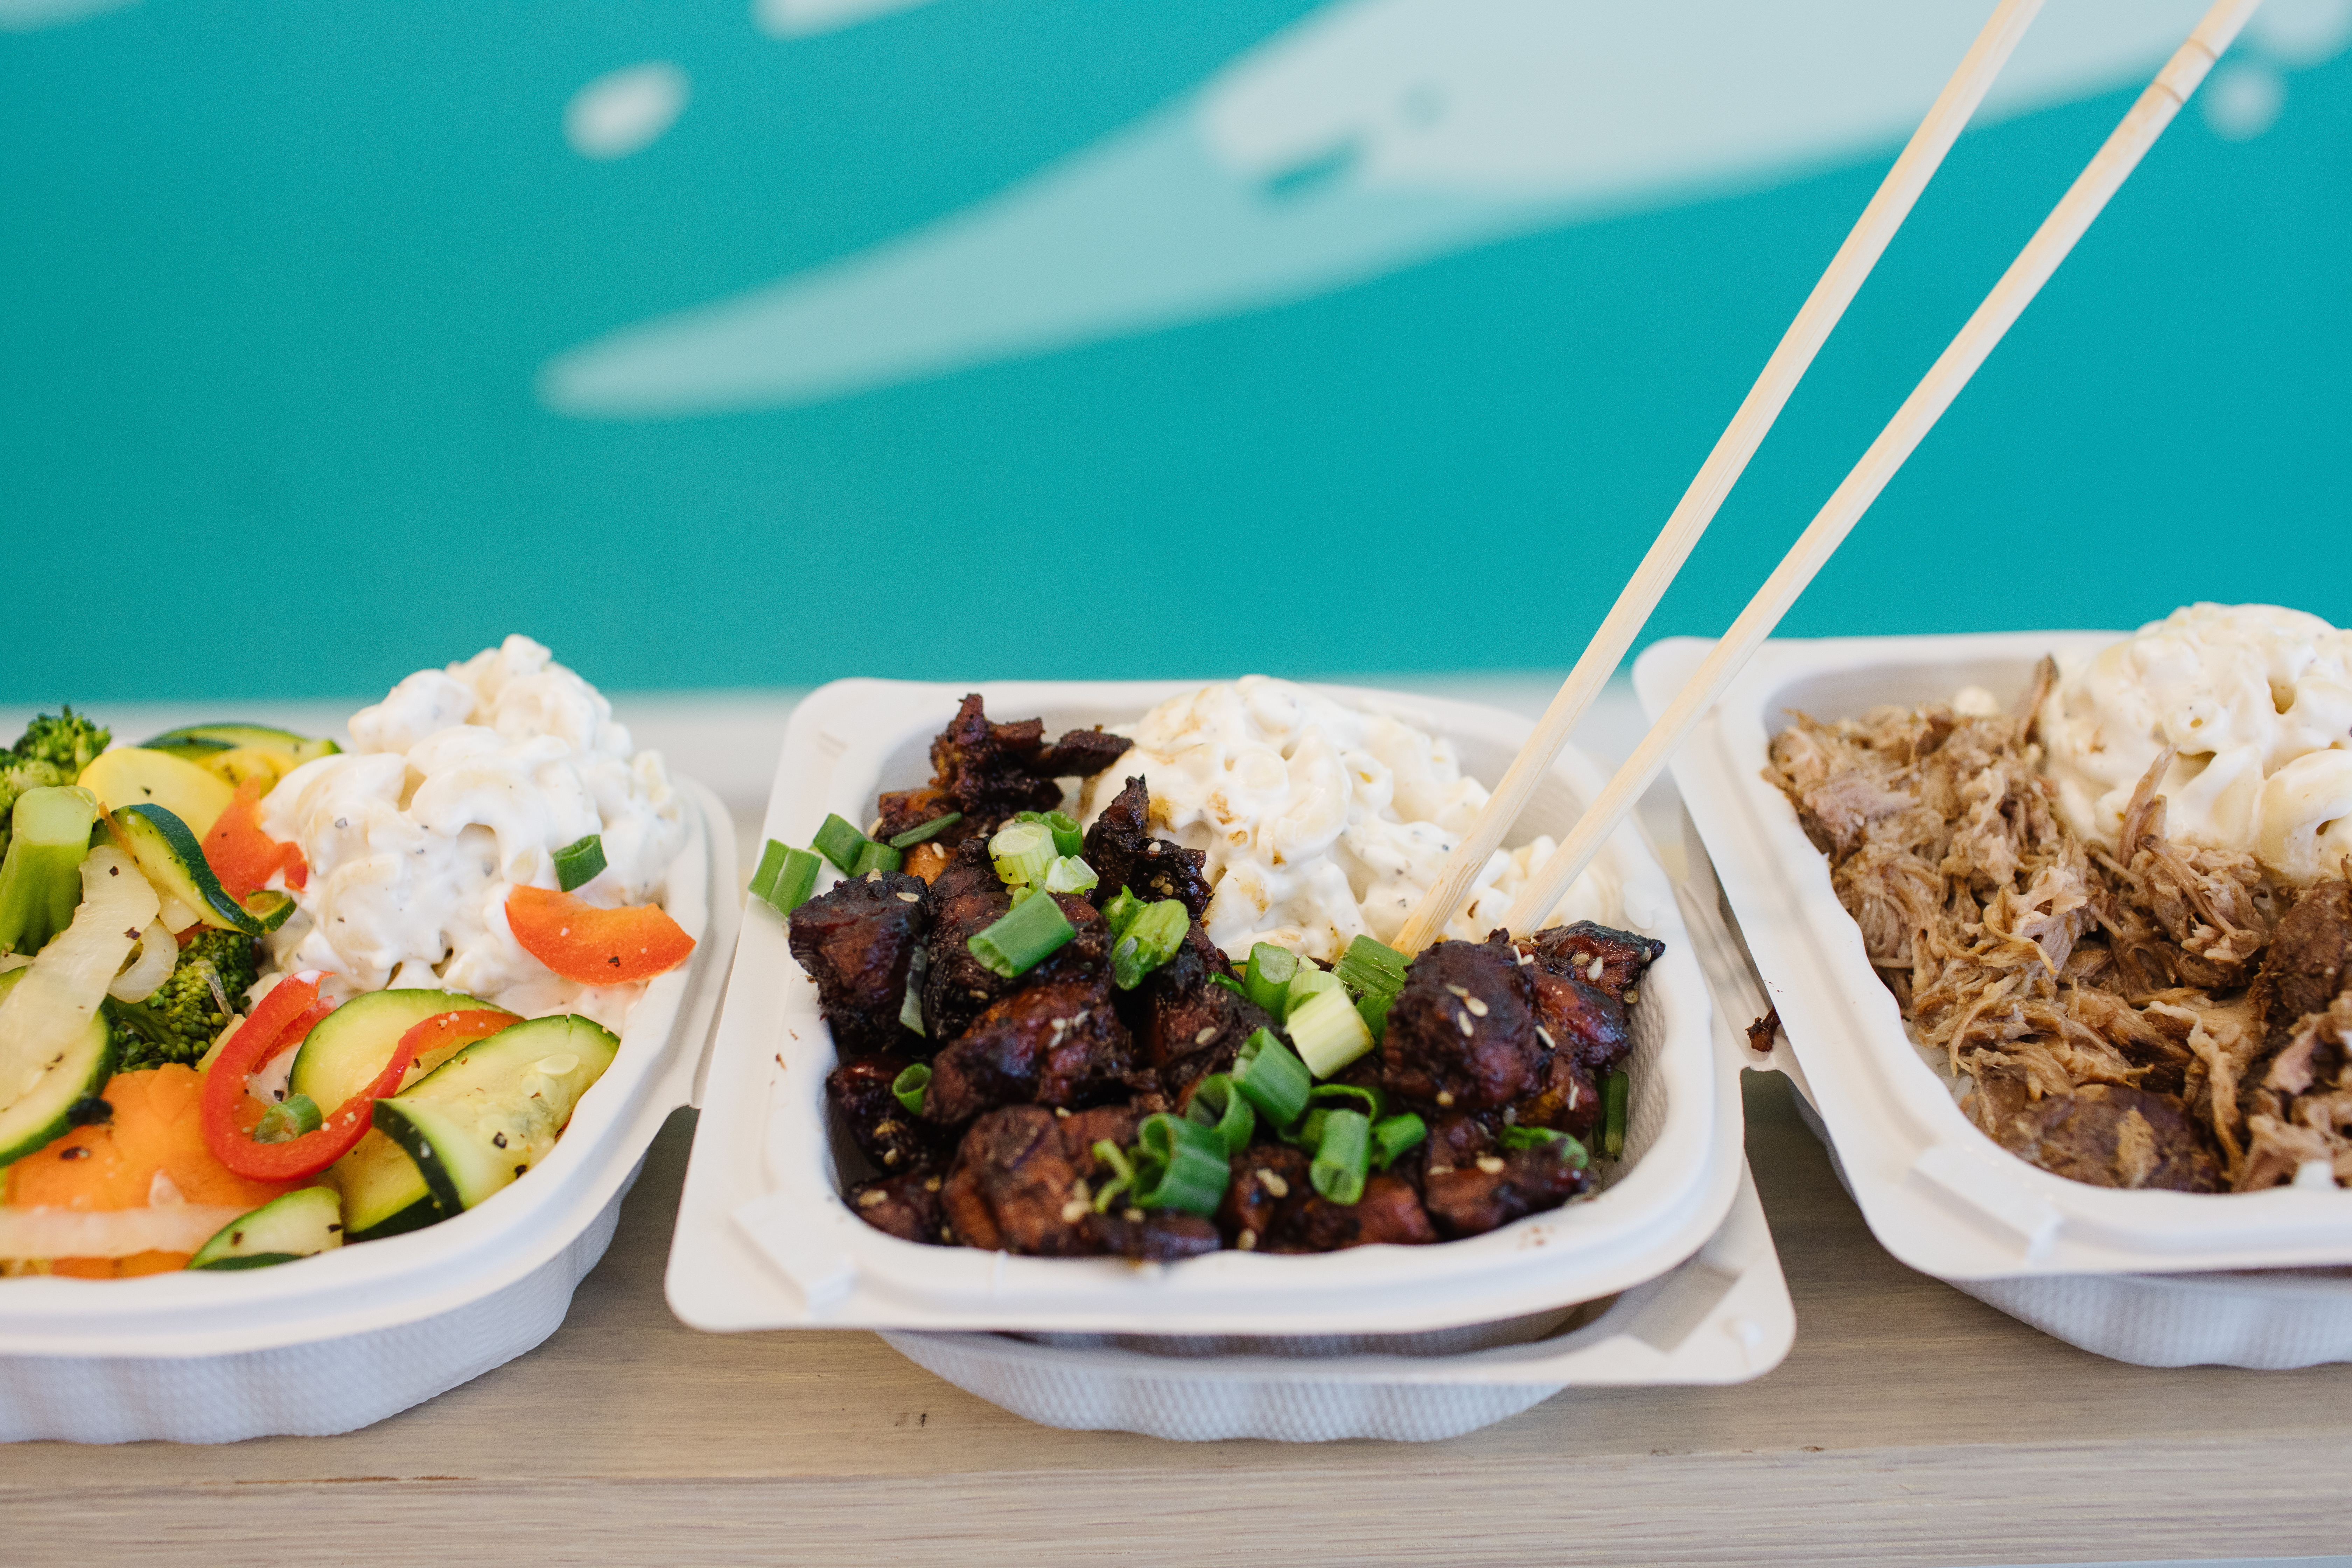 Ambitious Hawaiian 'plate lunch' restaurant opens ghost kitchen in ...